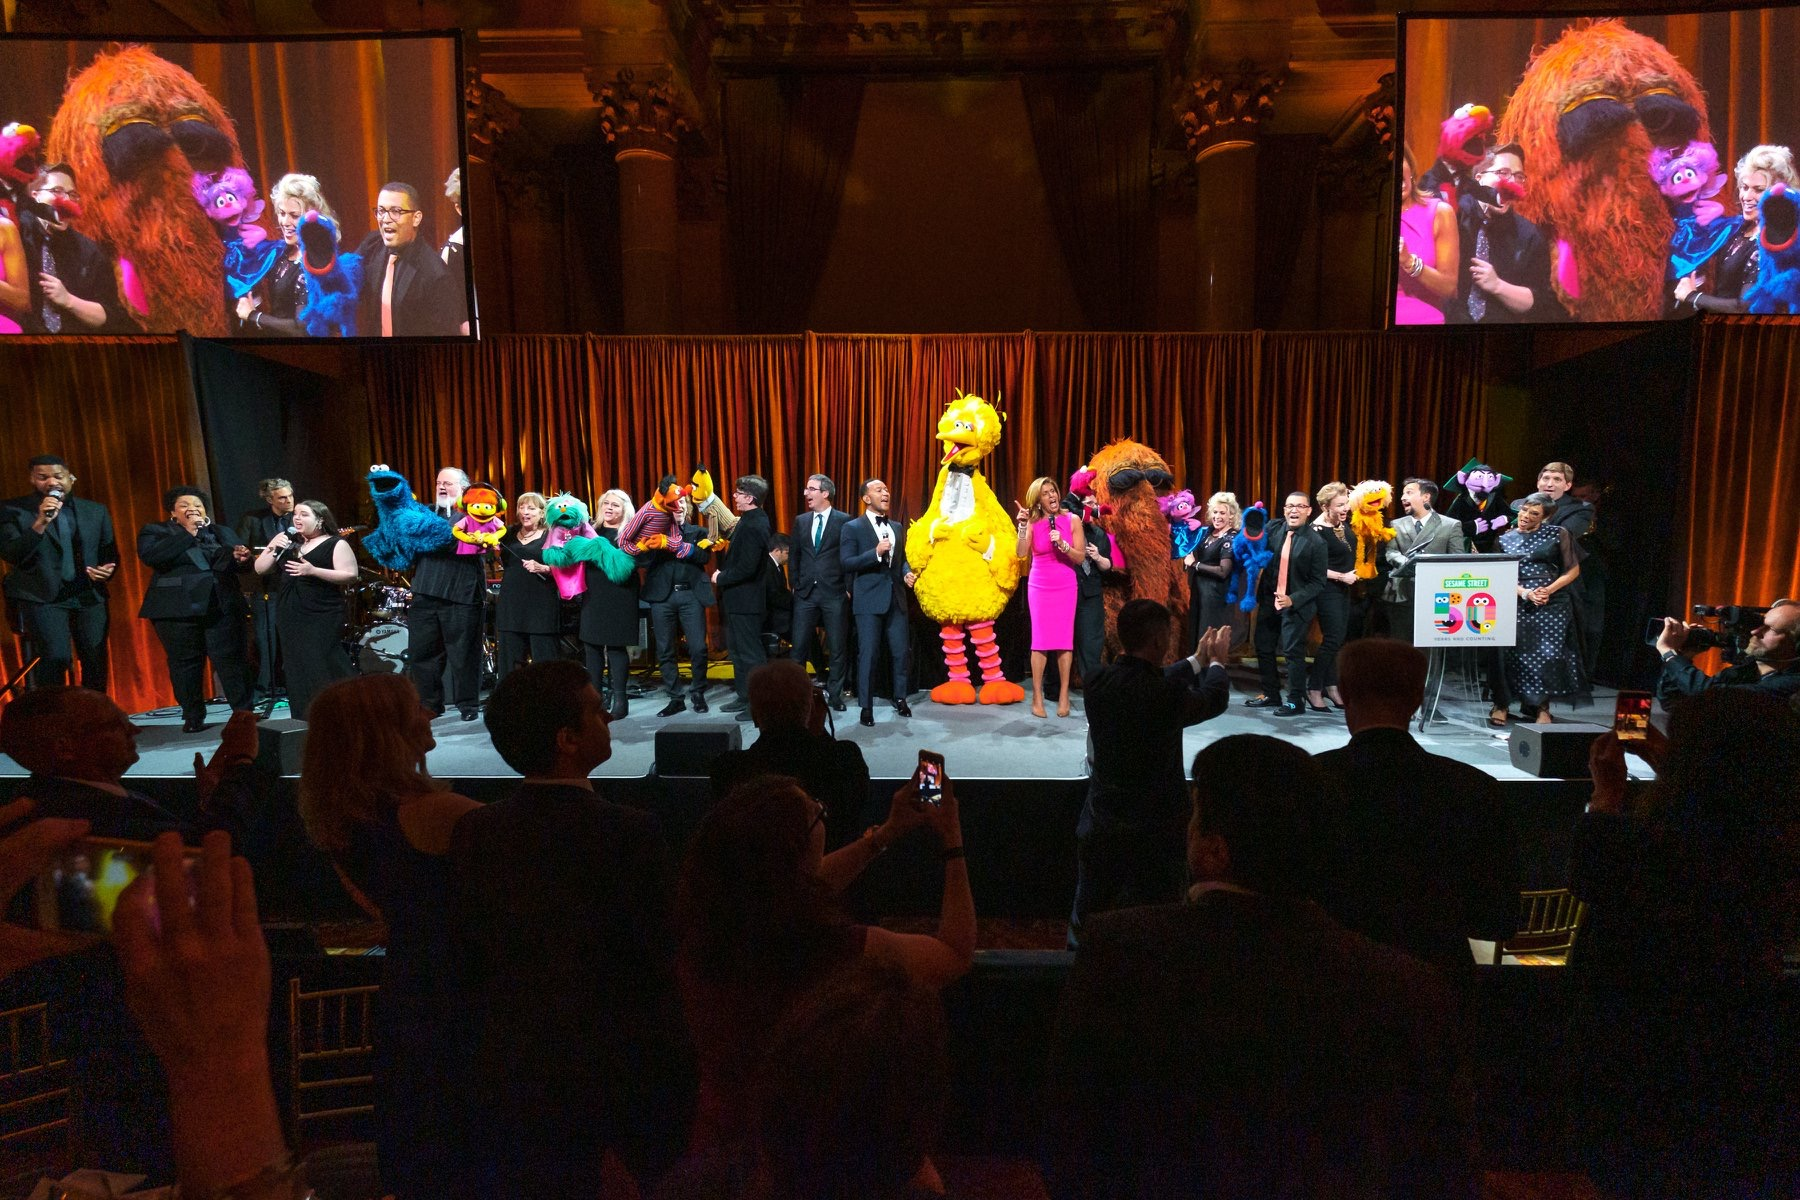 On stage with John Legend at the Sesame Street 50th Anniversary Gala